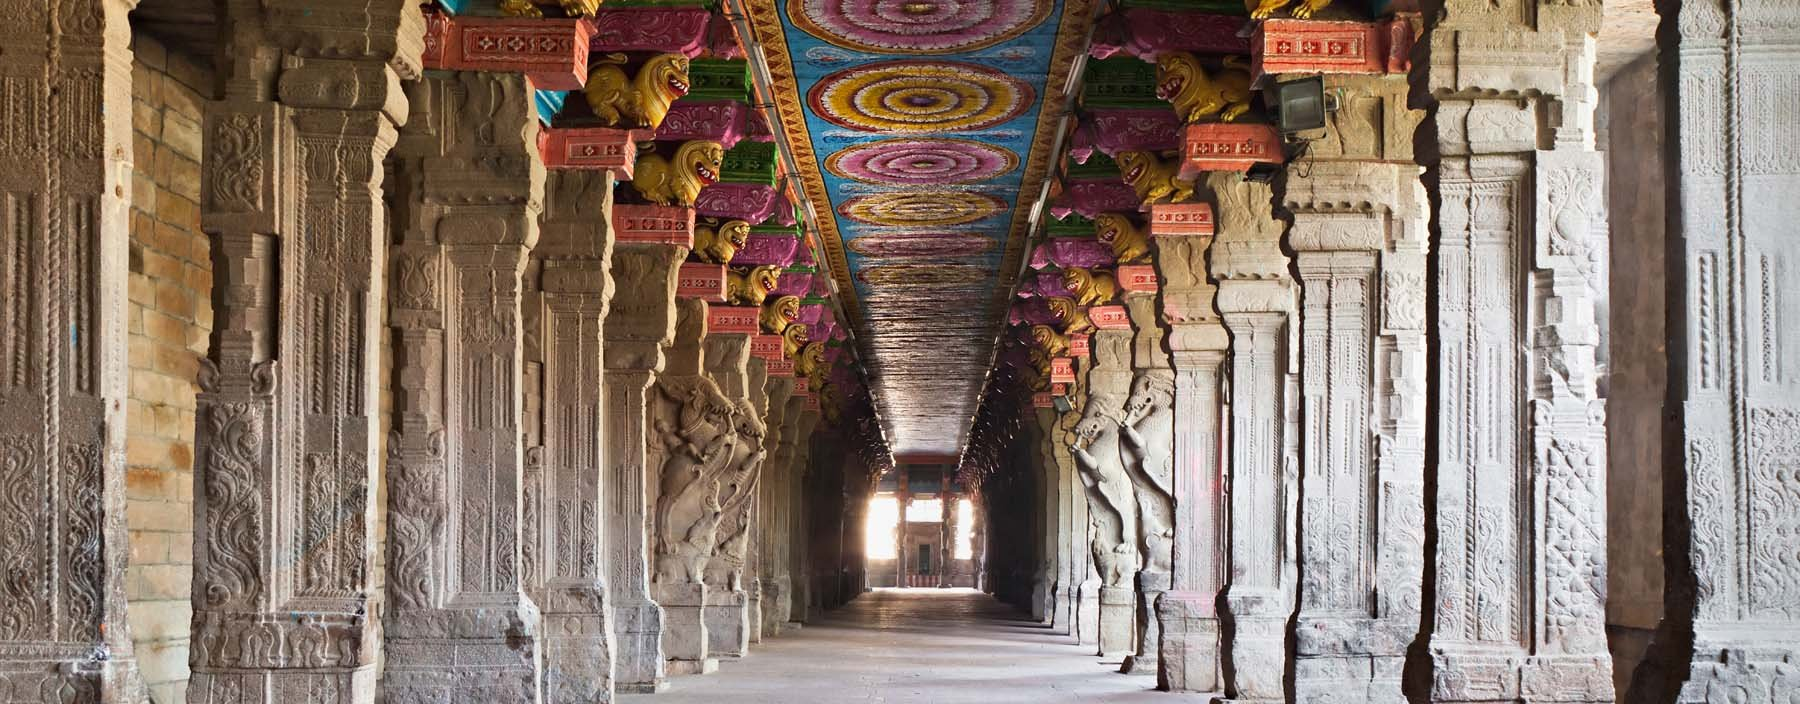 in, madurai, inside of meenakshi hindu temple, tamil nadu.jpg